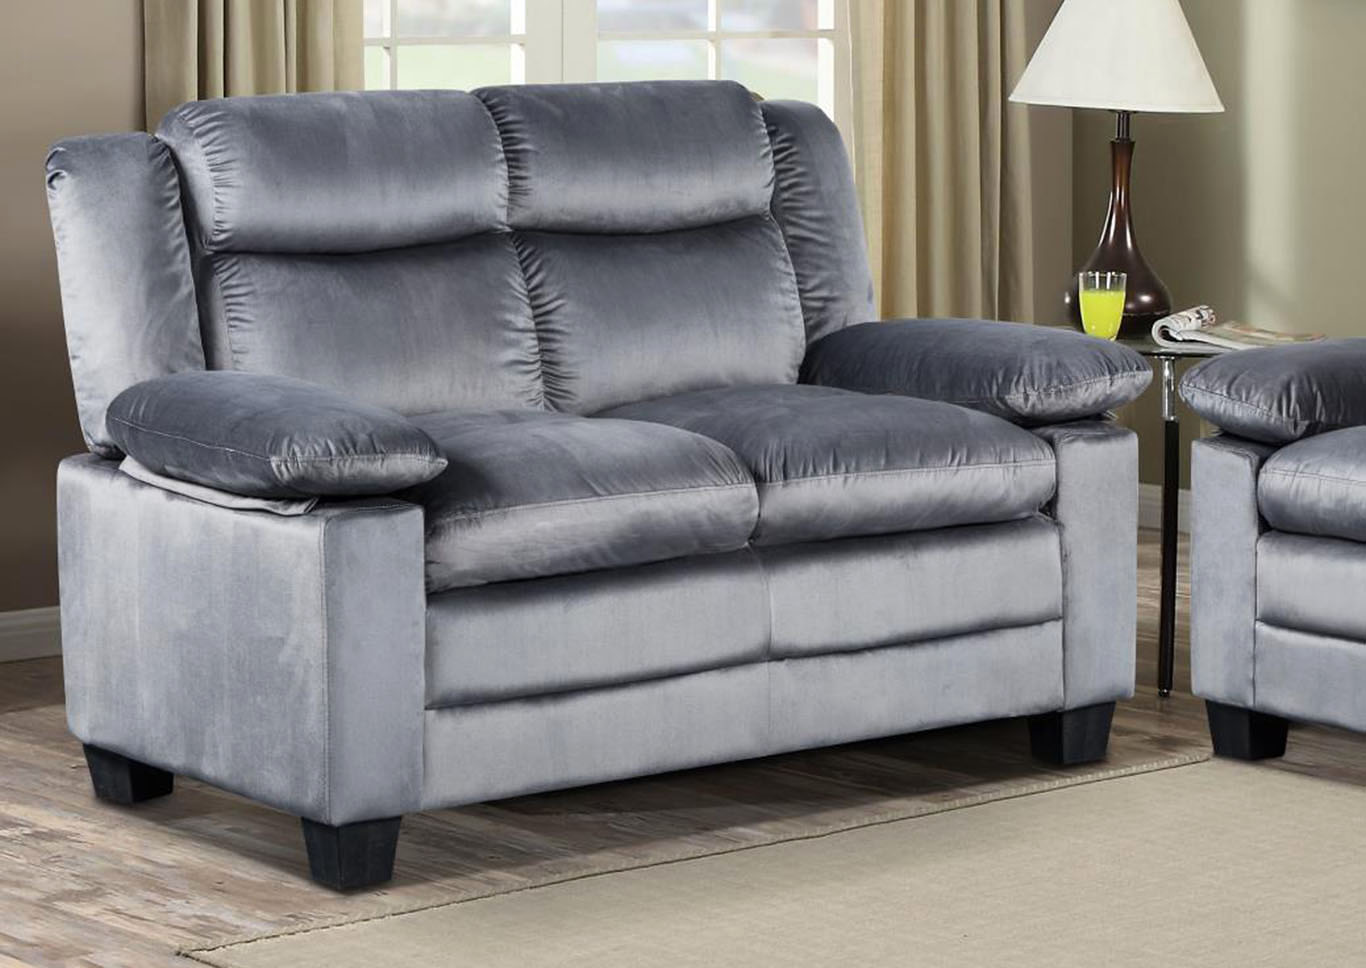 Silver Grey Reclining Loveseat,Global Trading